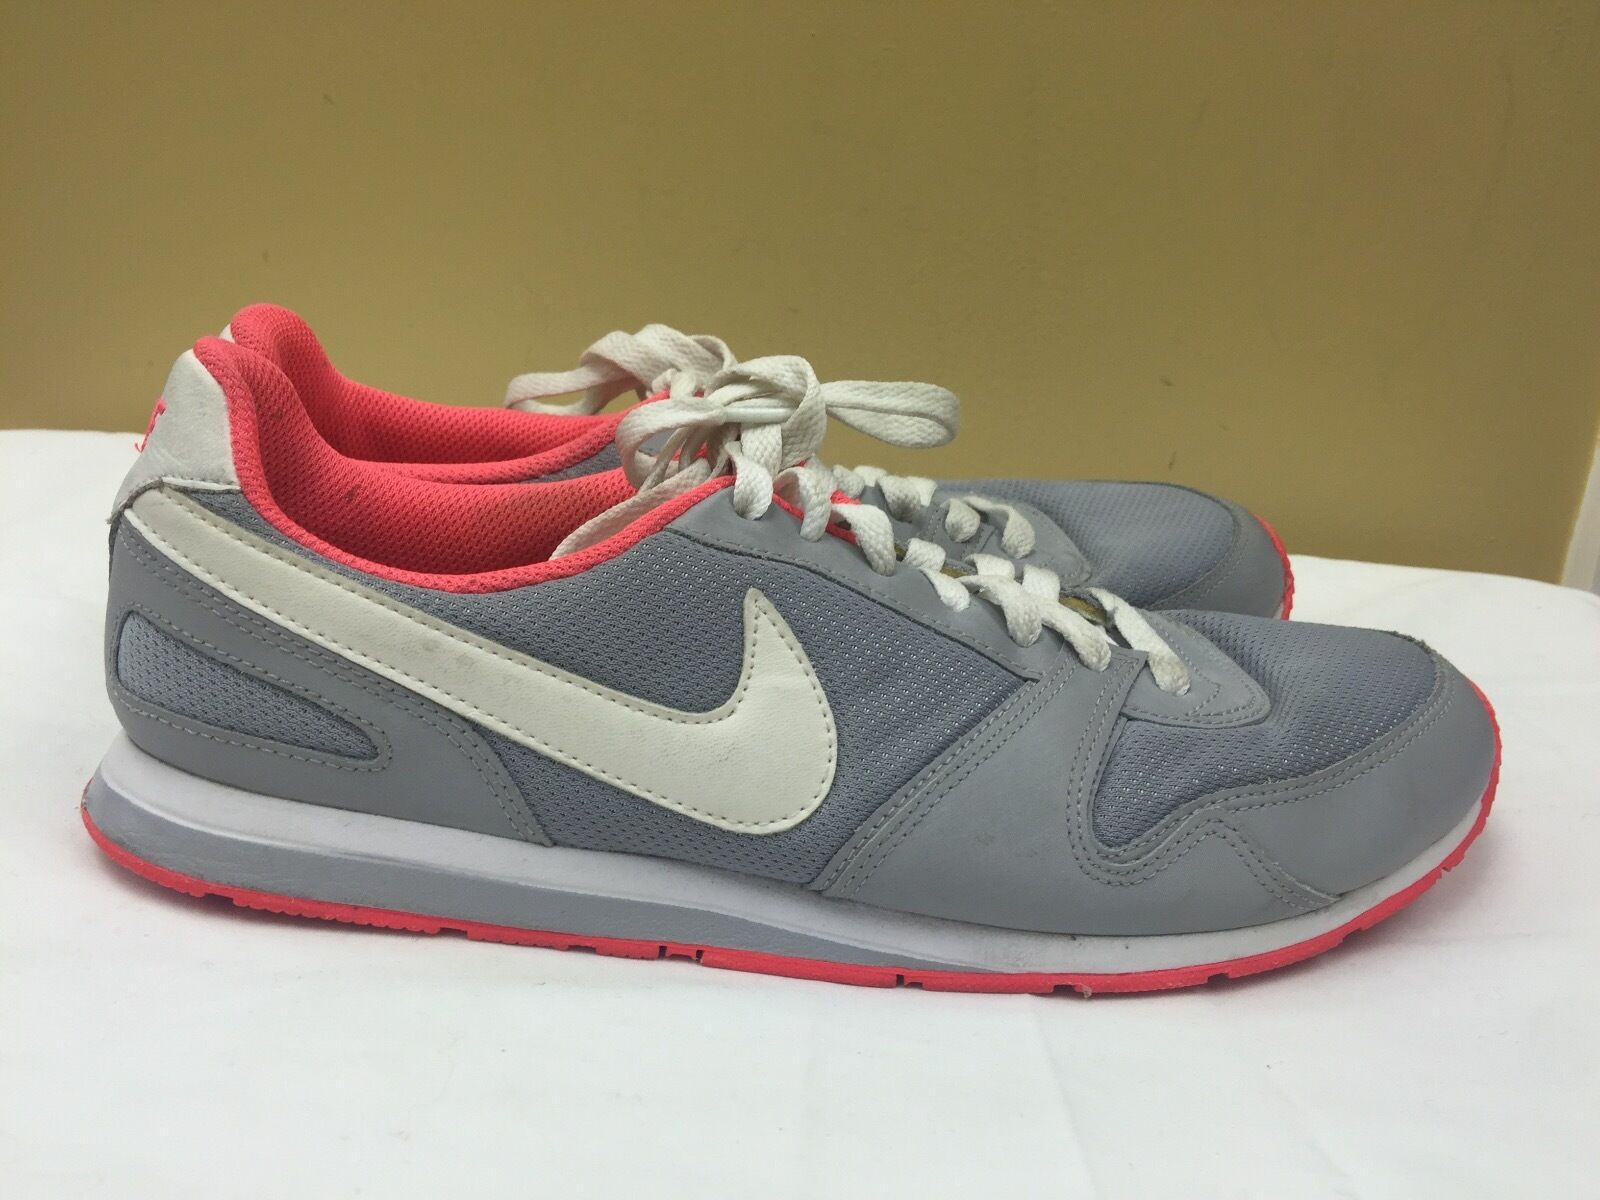 Nike Women fashion shoes gray/pink , 386199-016 size  9.5 pre-owned